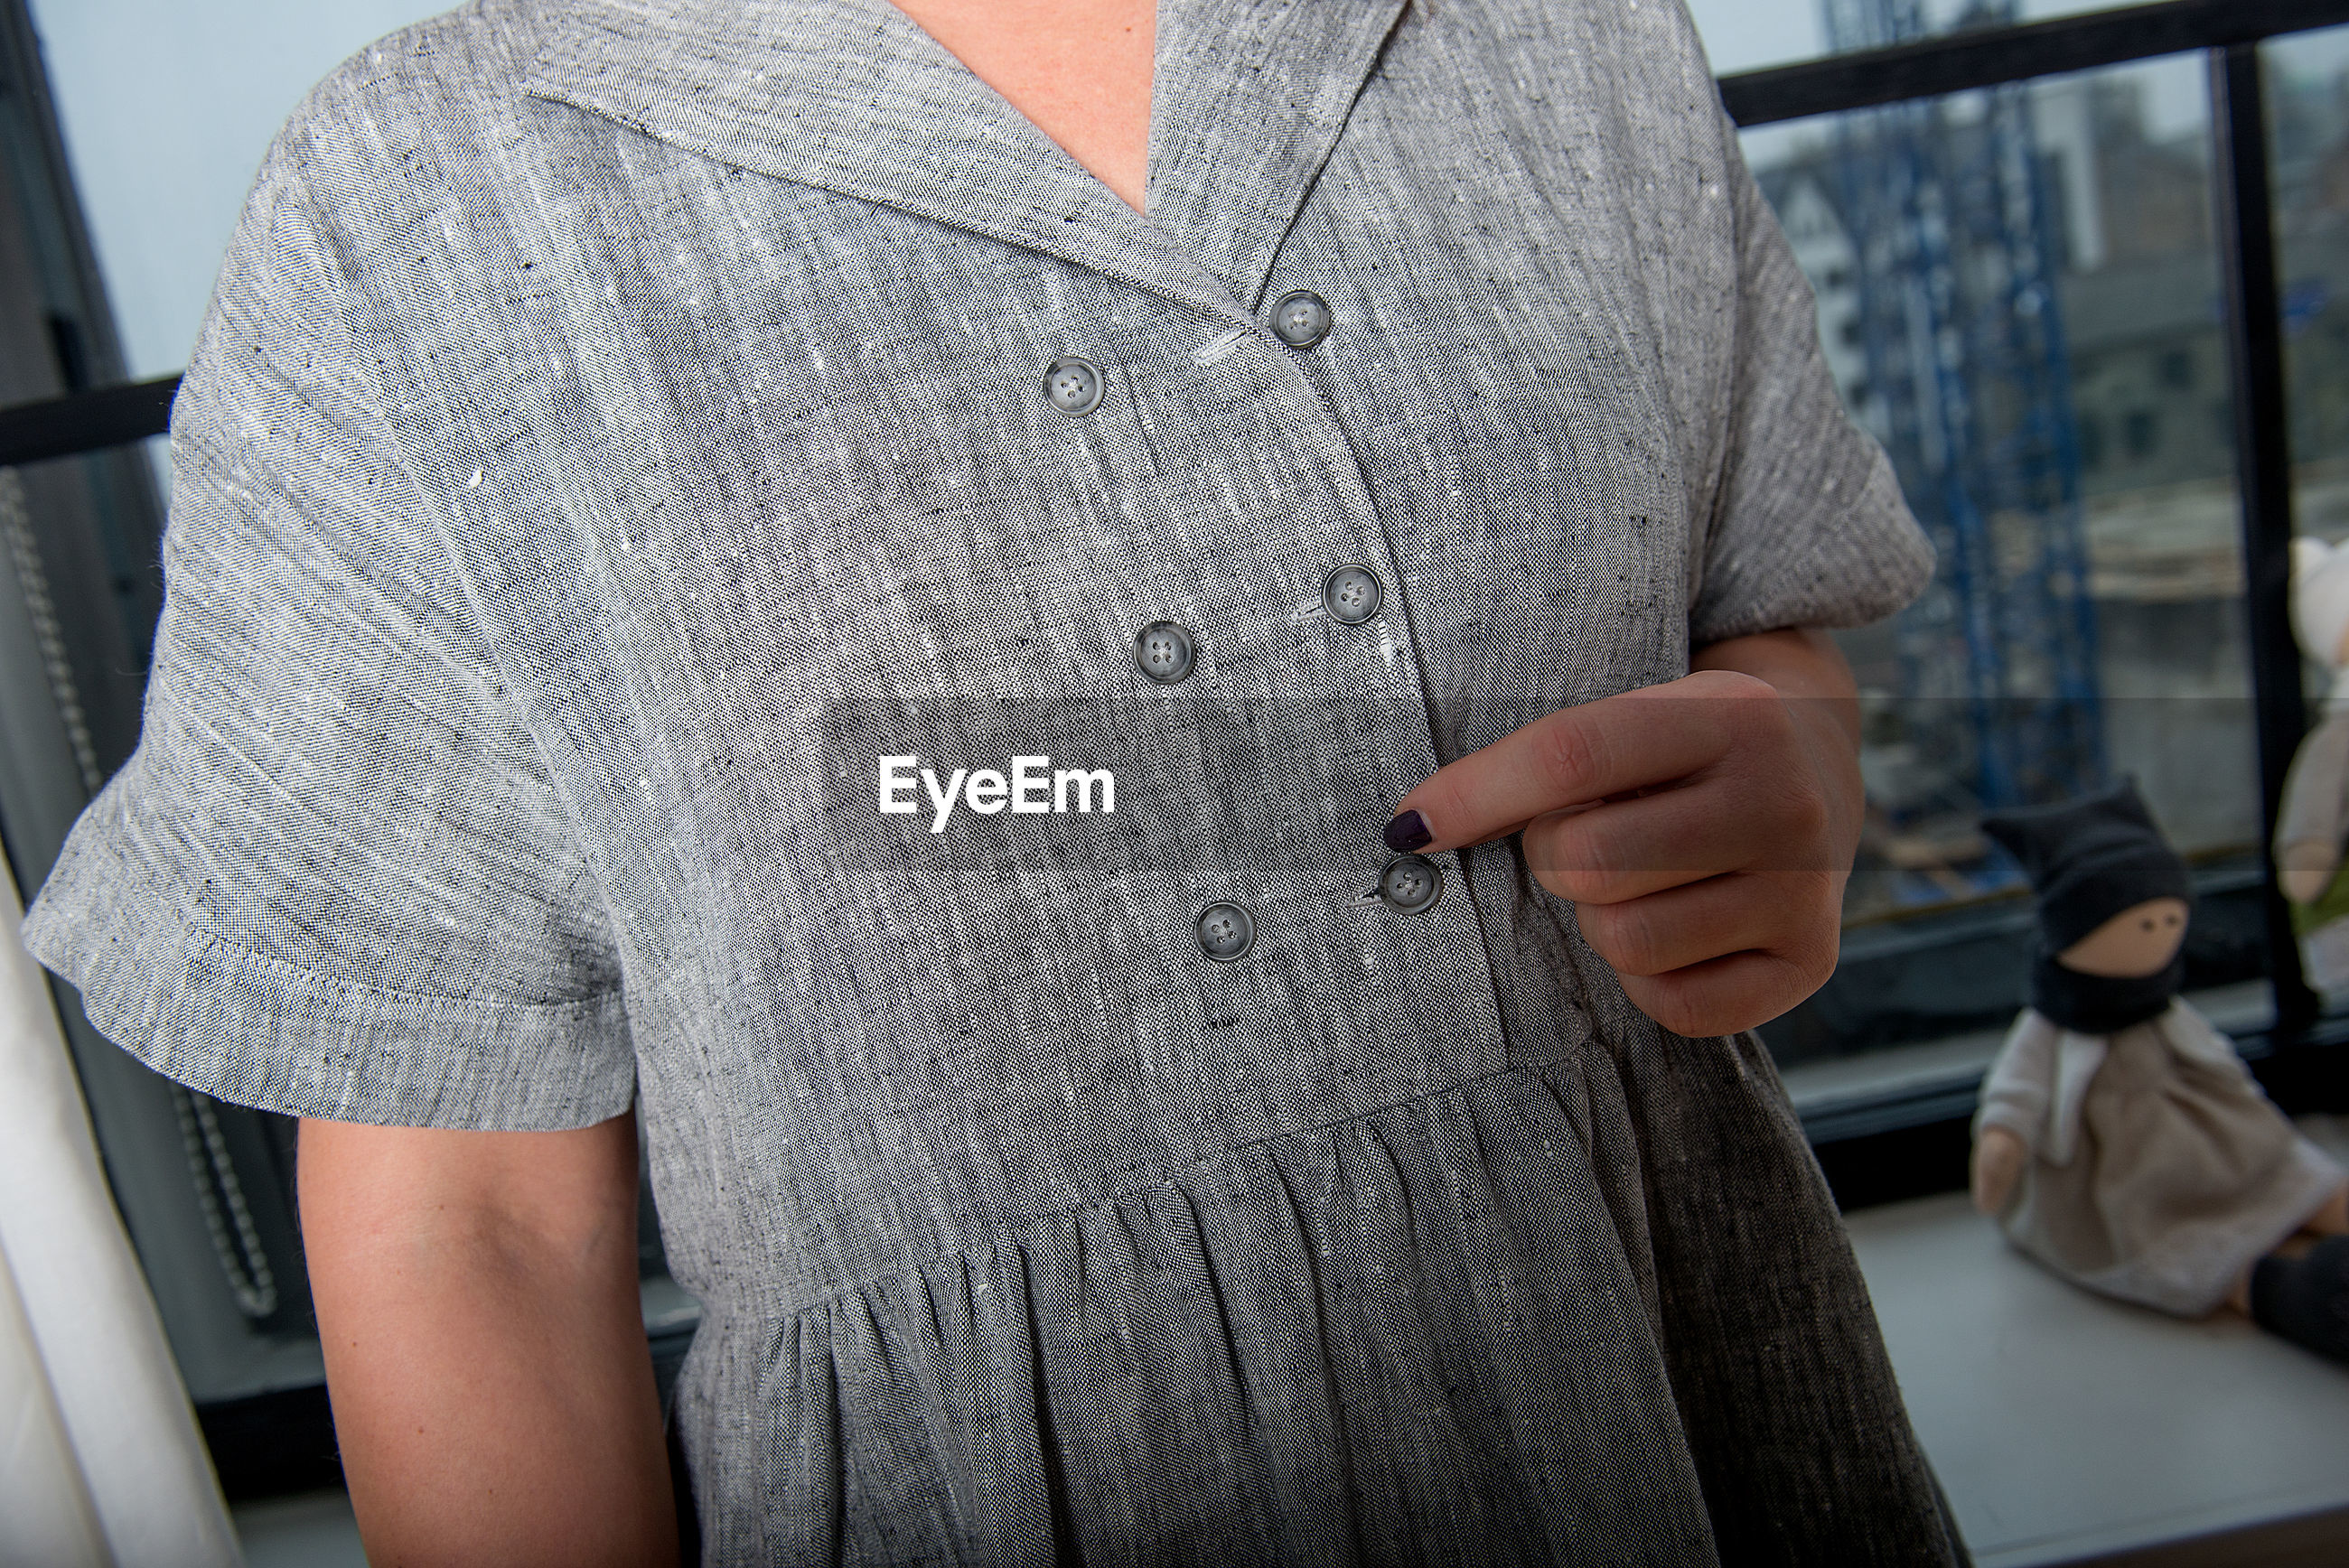 Midsection of woman wearing gray linen dress at home